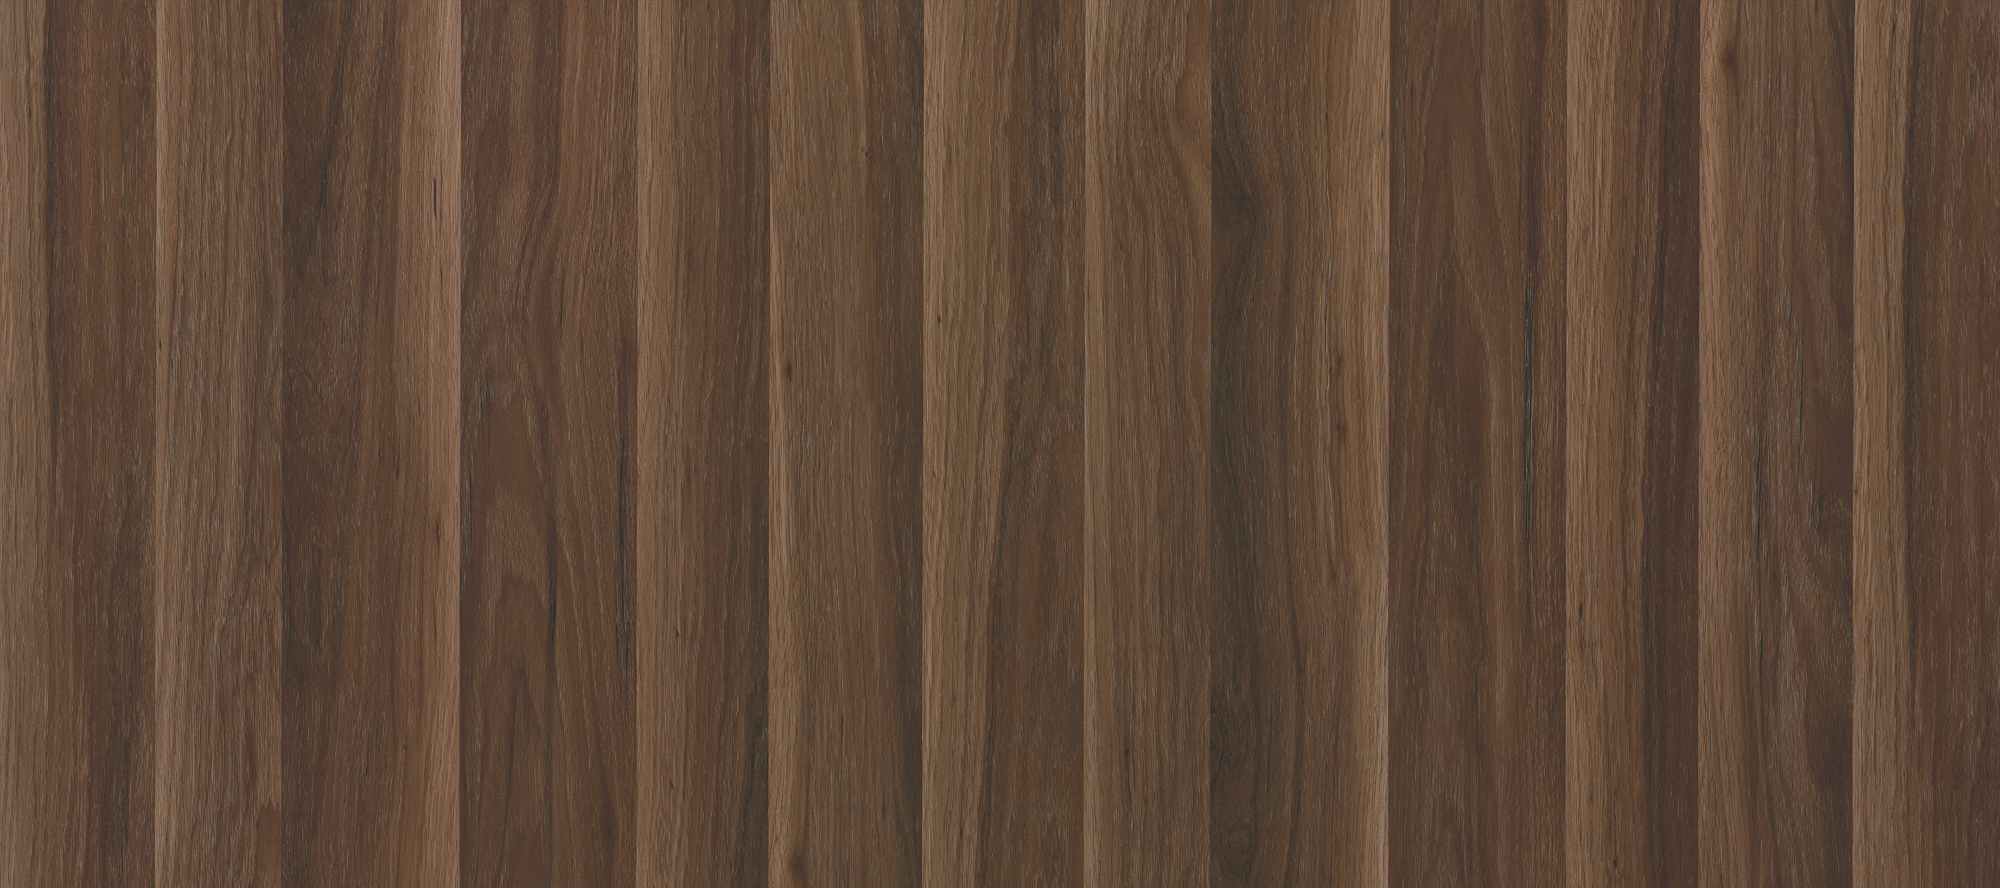 1MM international, North Supreme, South Supreme For Door Laminate Designs India-Sundek International